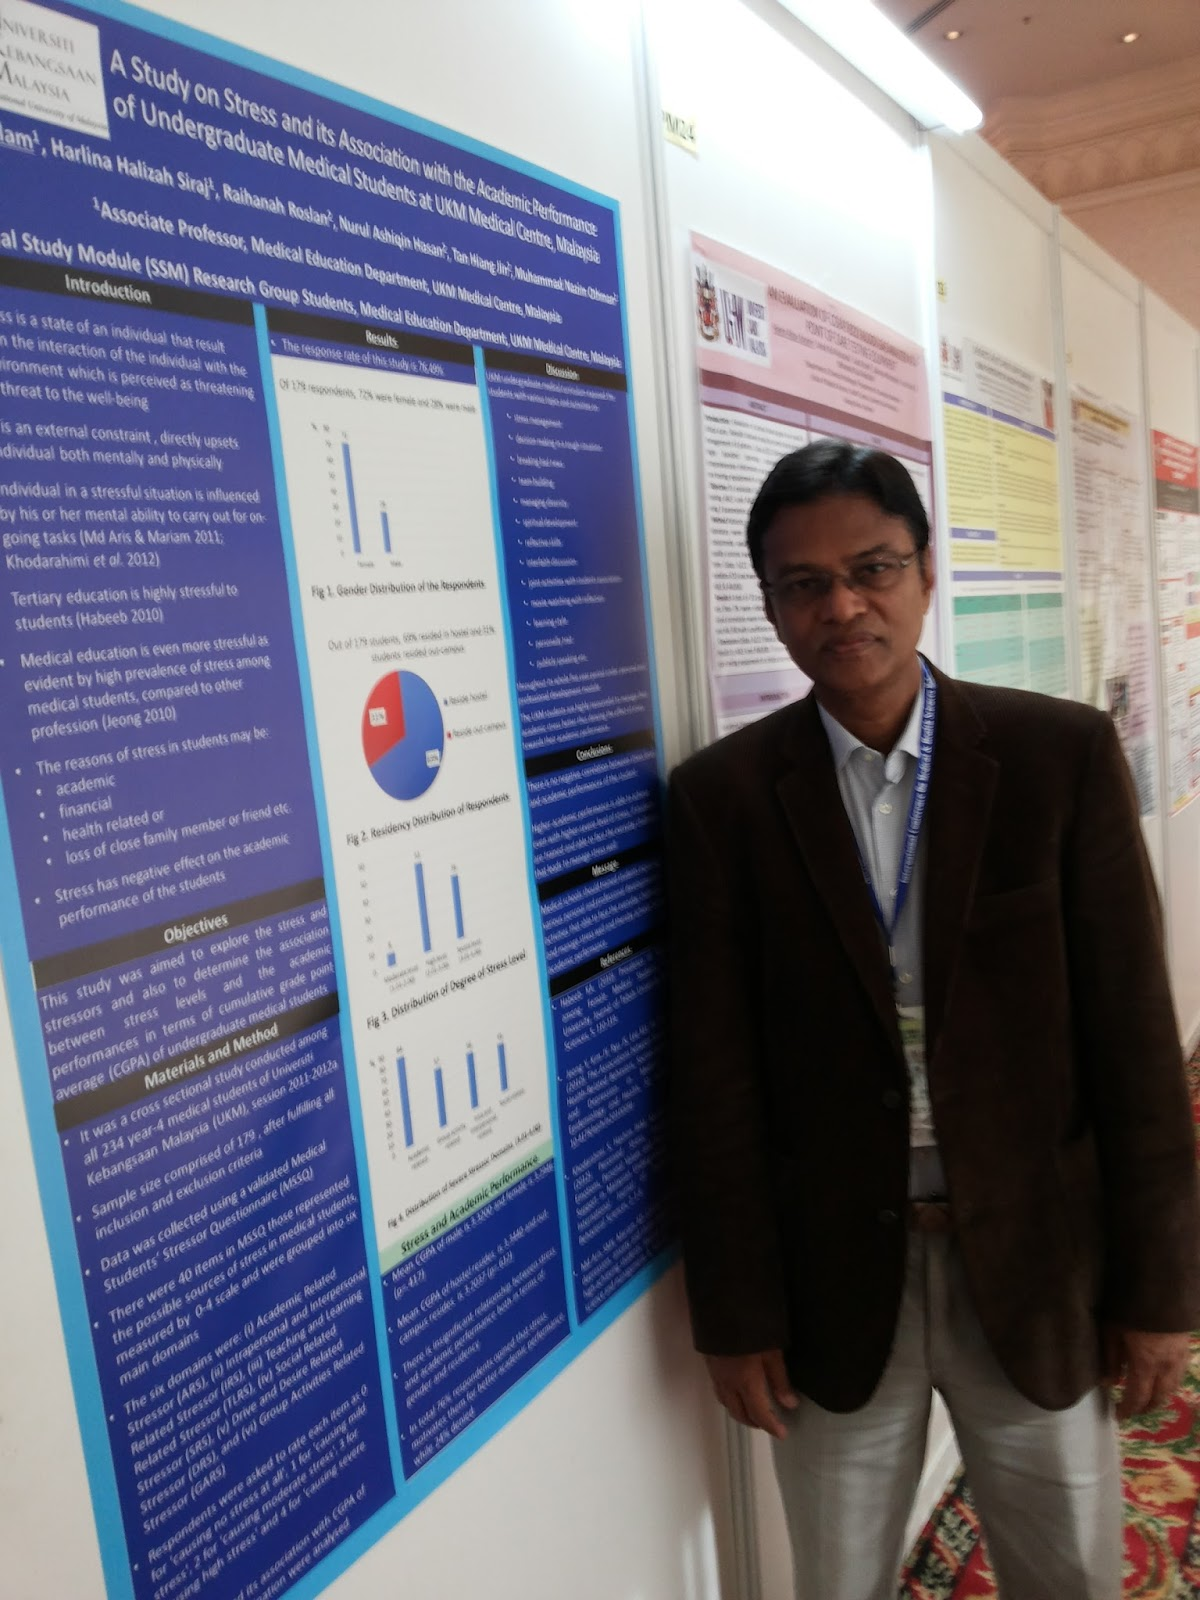 A Study on Stress and Academic Performance, ICMHS, 2013, Malaysia